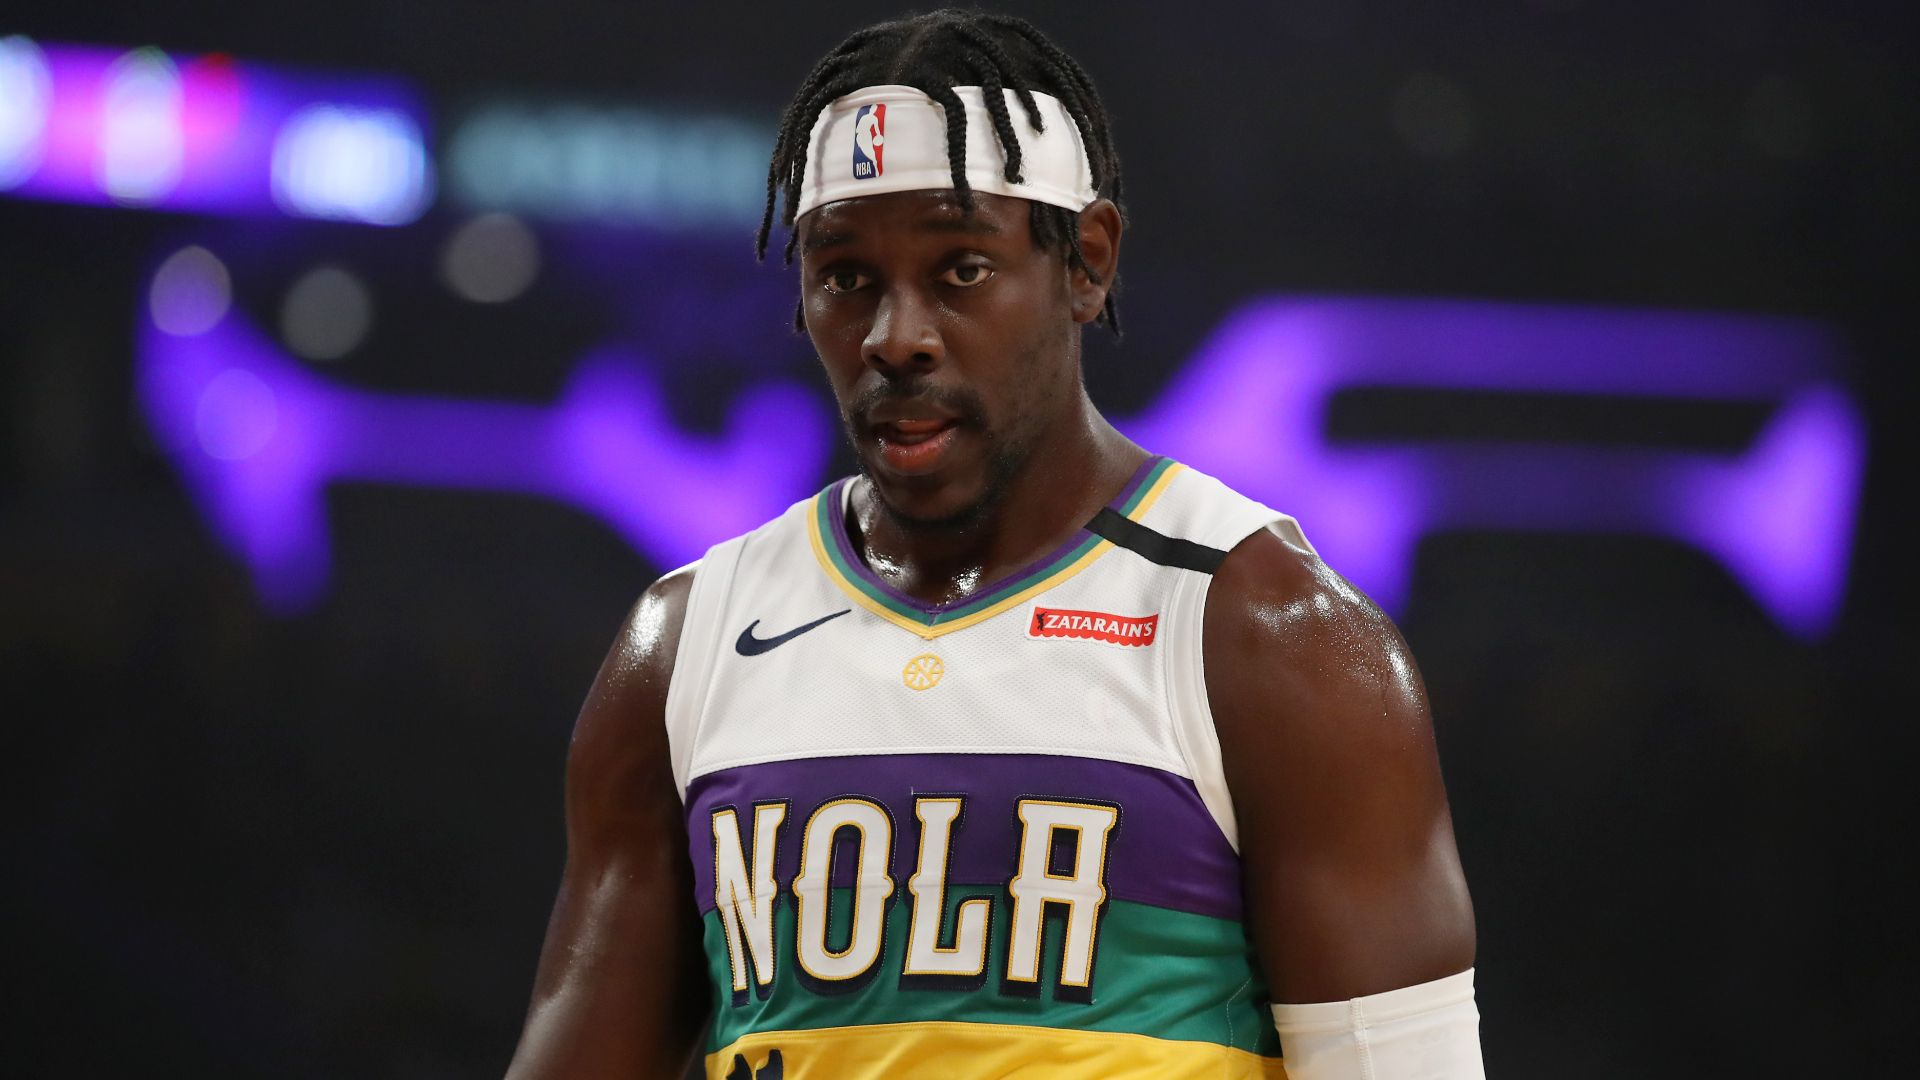 Pelicans Jrue Holiday donating remaining salary to start